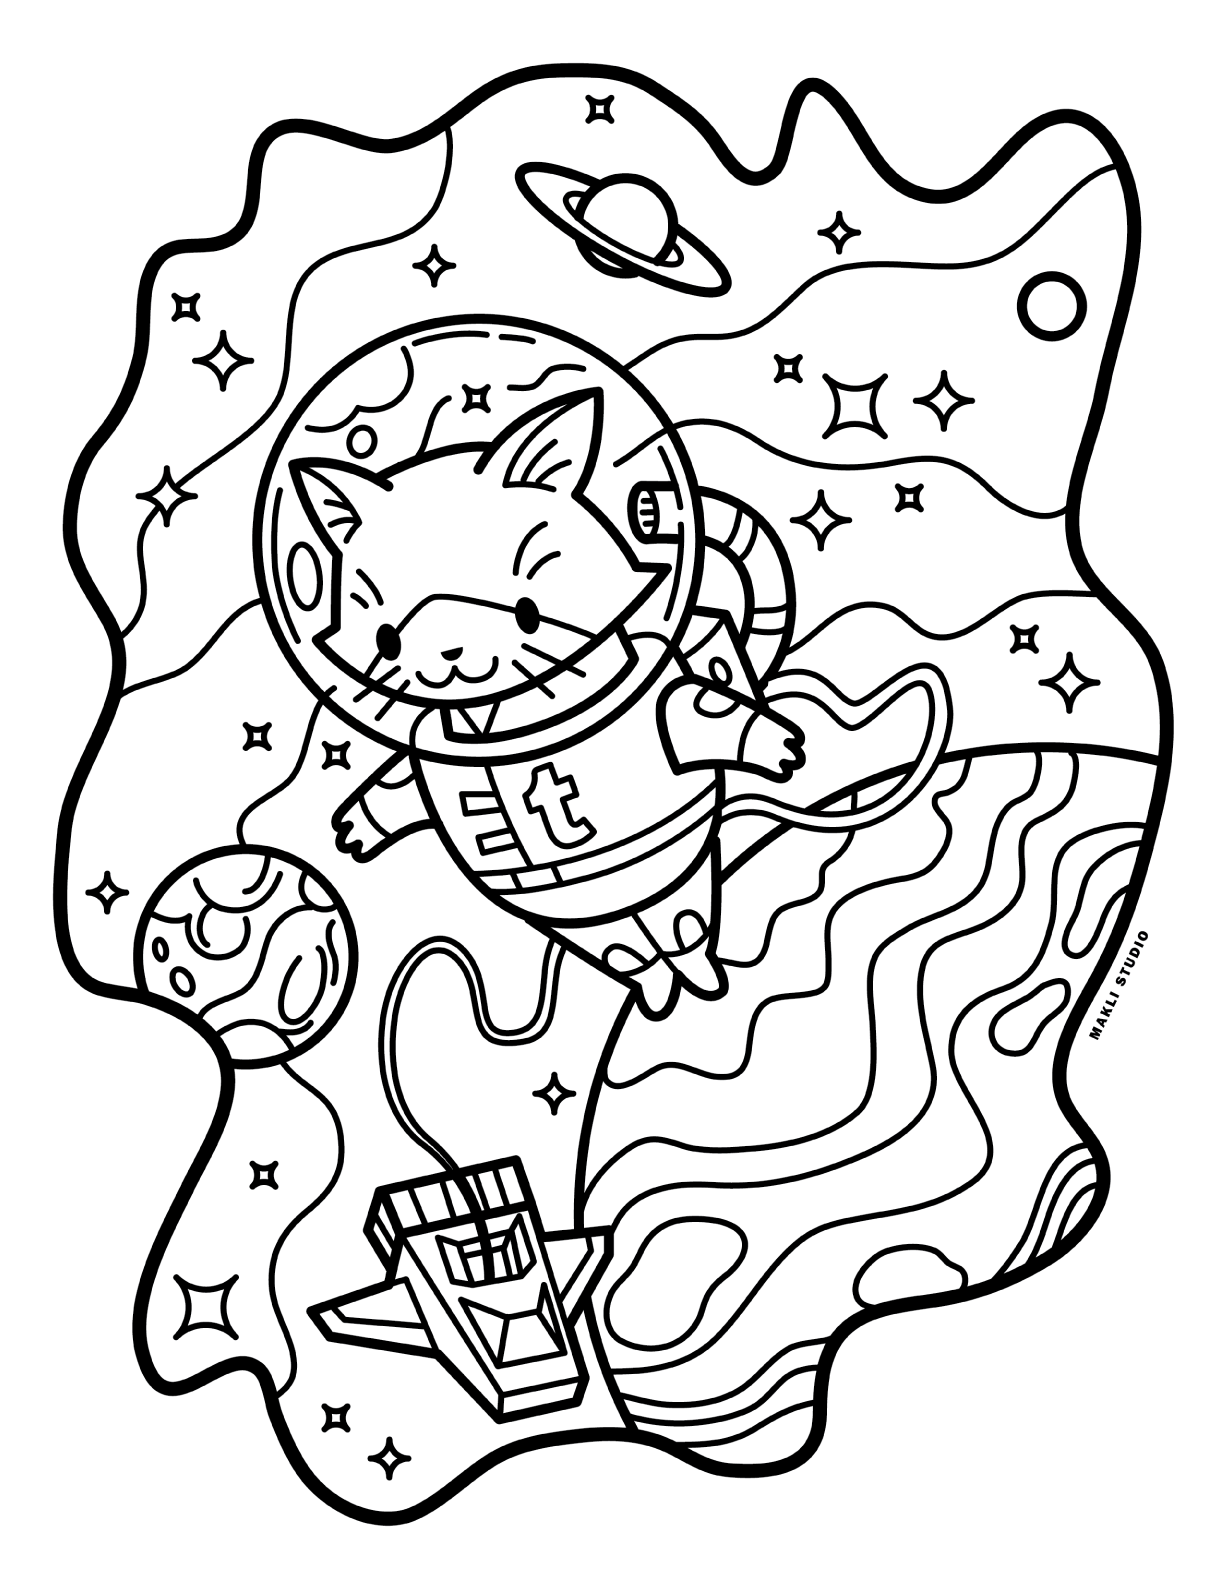 cute tumblr coloring pages free adult coloring pages tumblr tumblr cute coloring pages